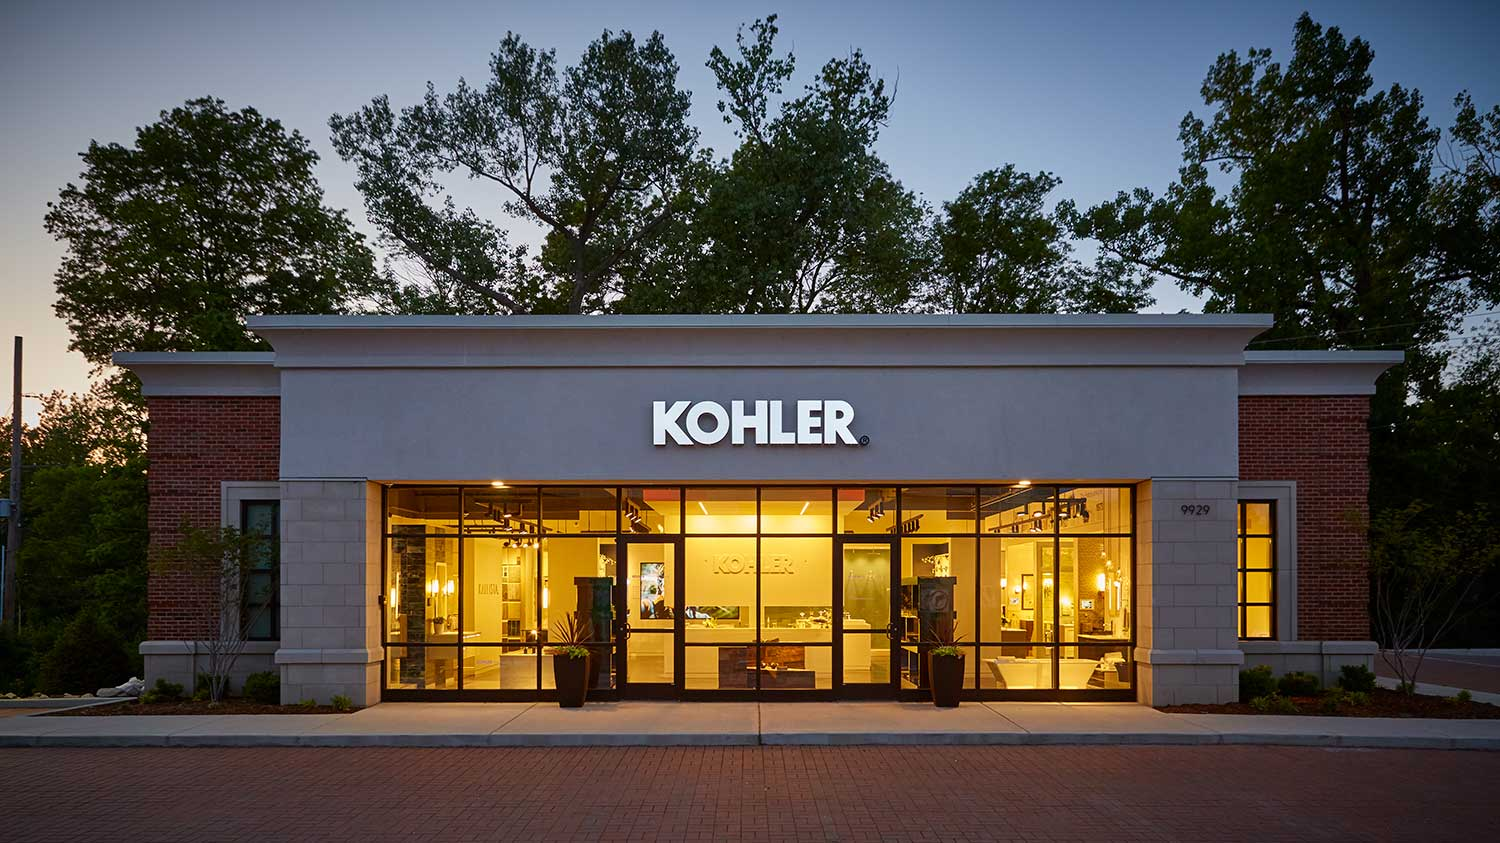 KOHLER Signature Store by Crescent Supply